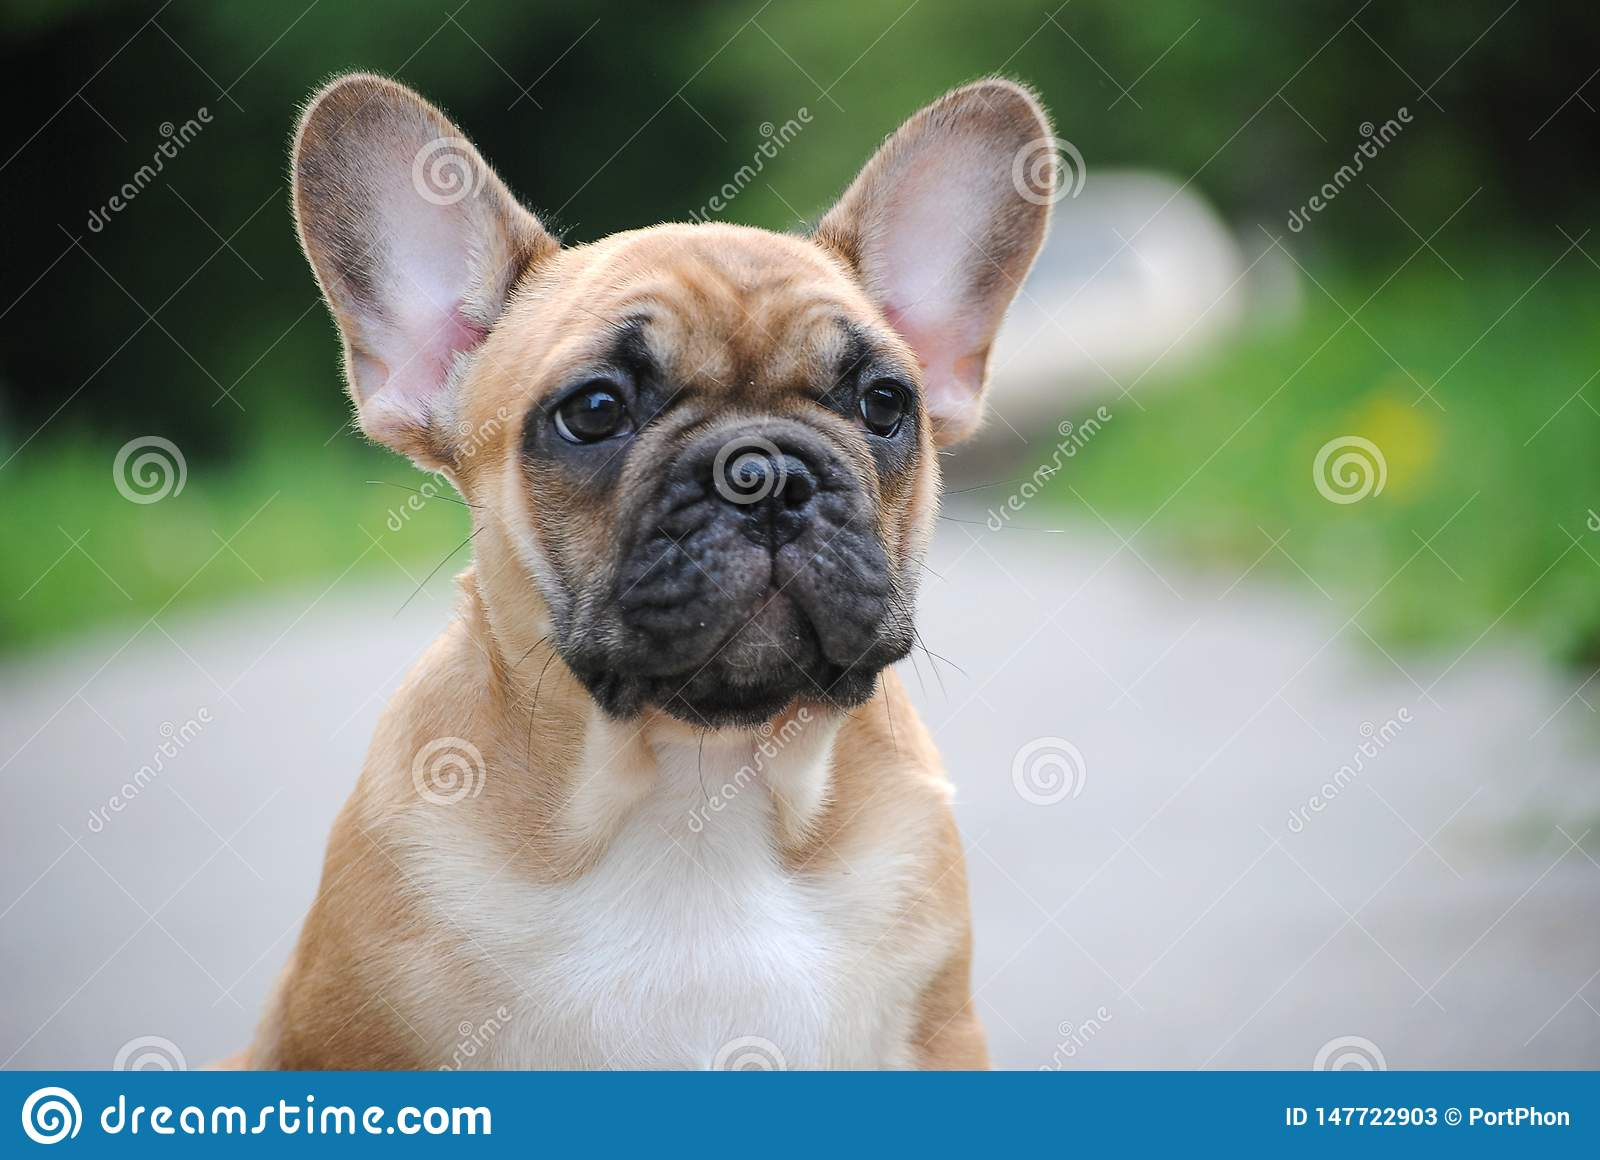 French Bulldog puppy on a walk.